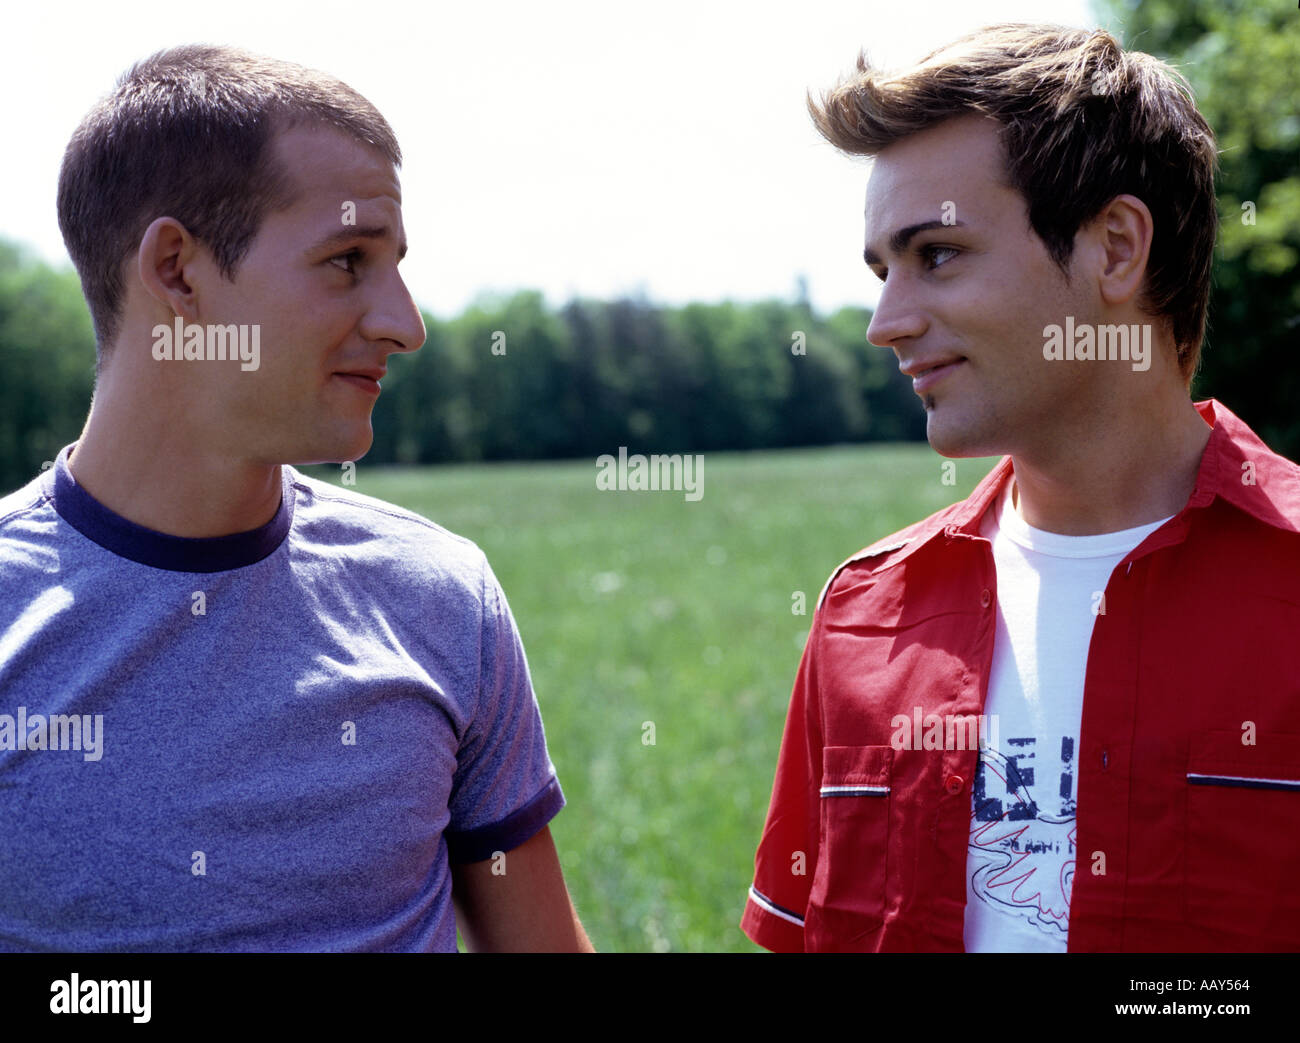 two gay men holding hands and looking at each other Stock